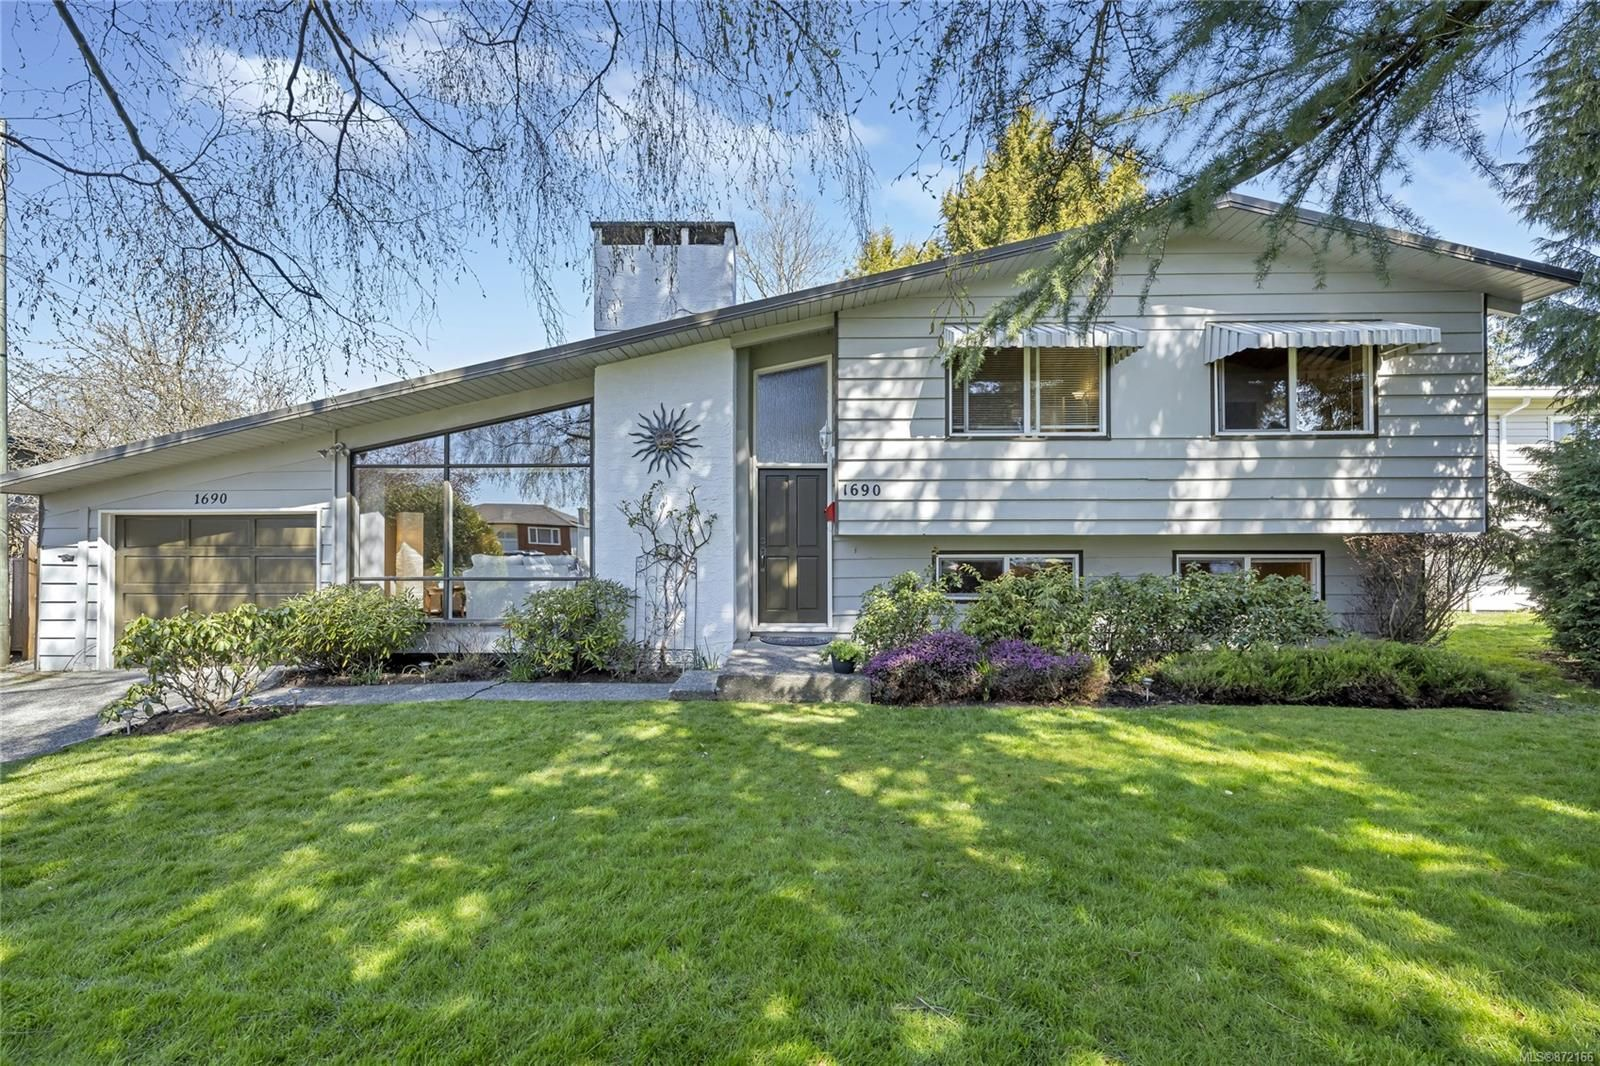 Main Photo: 1690 Blair Ave in : SE Lambrick Park House for sale (Saanich East)  : MLS®# 872166